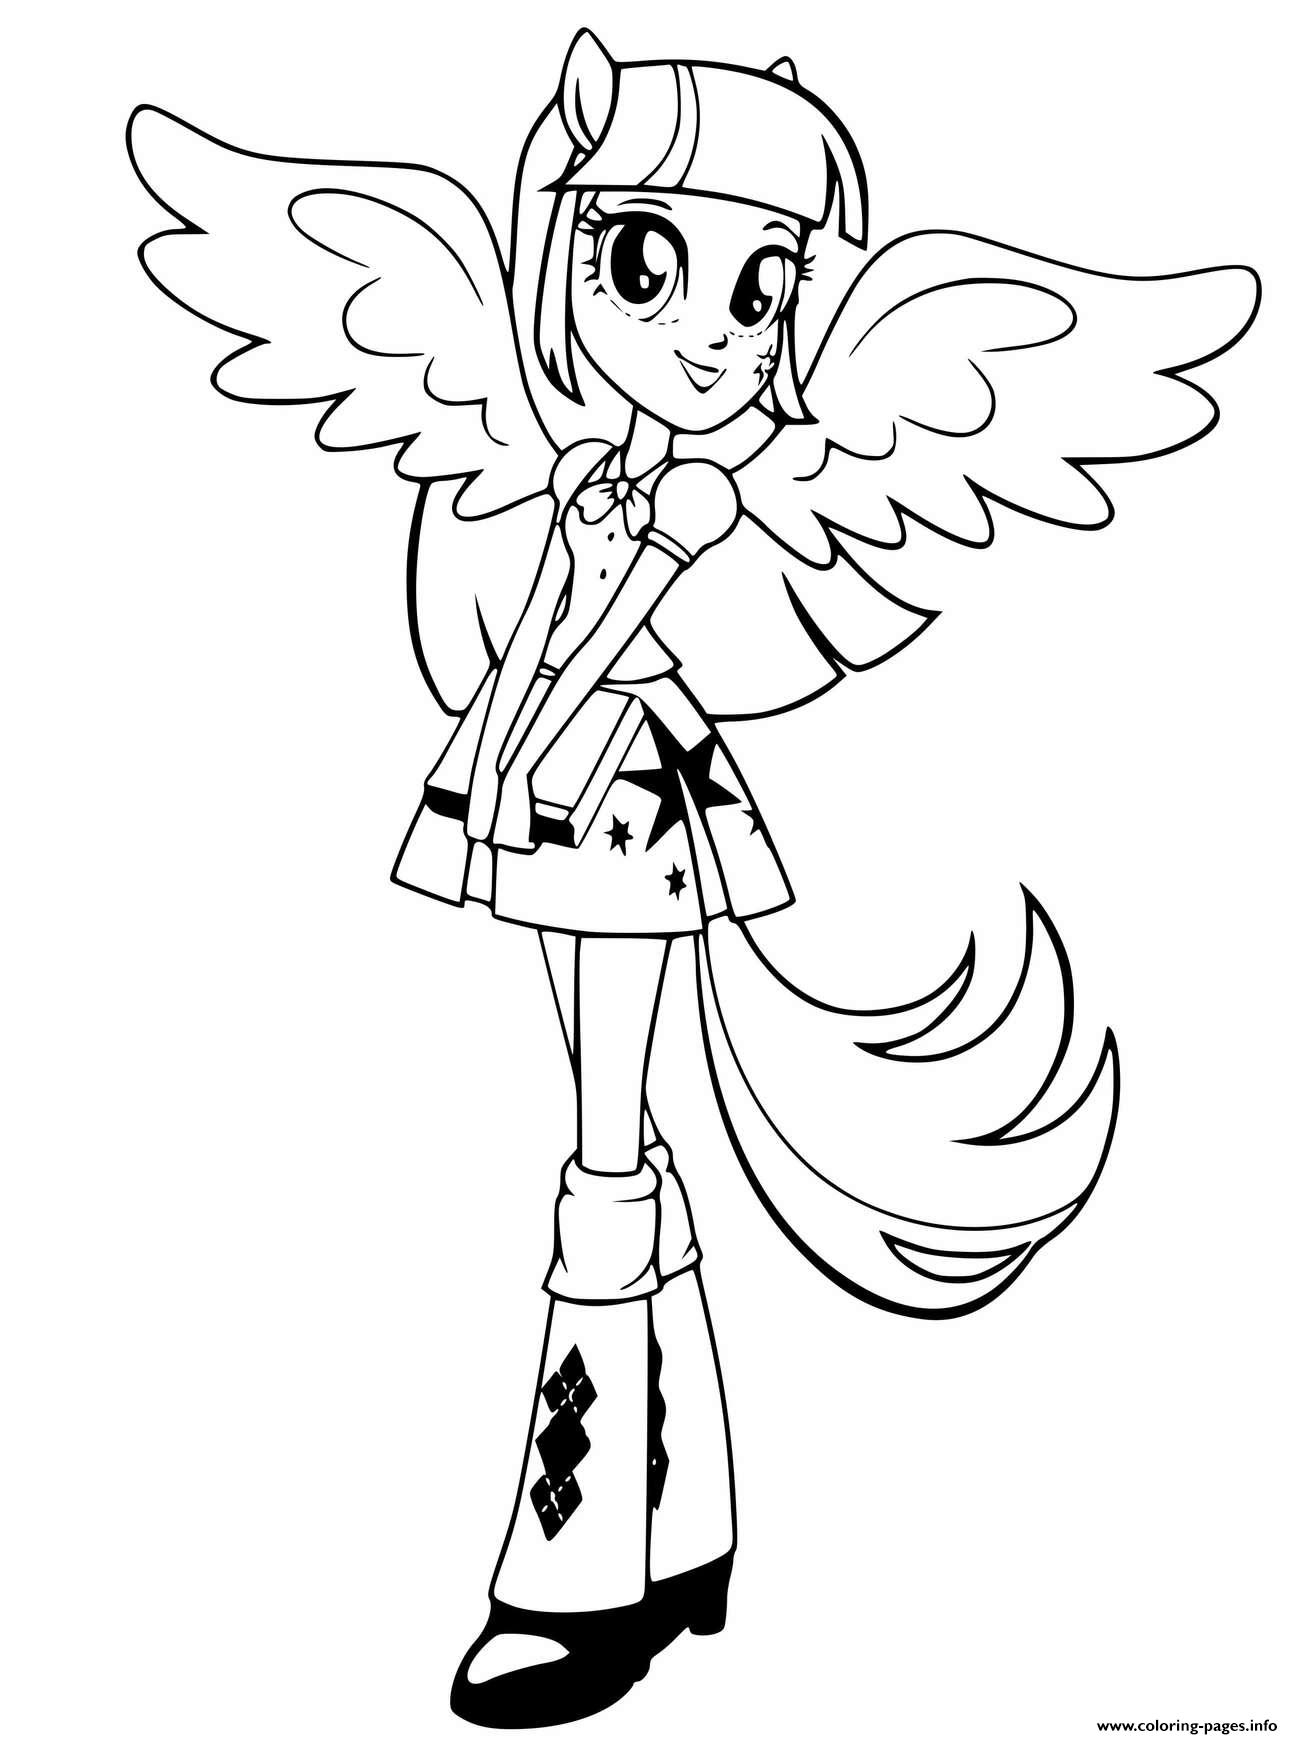 rarity coloring page my little pony rarity wear beautiful tiara coloring page page coloring rarity